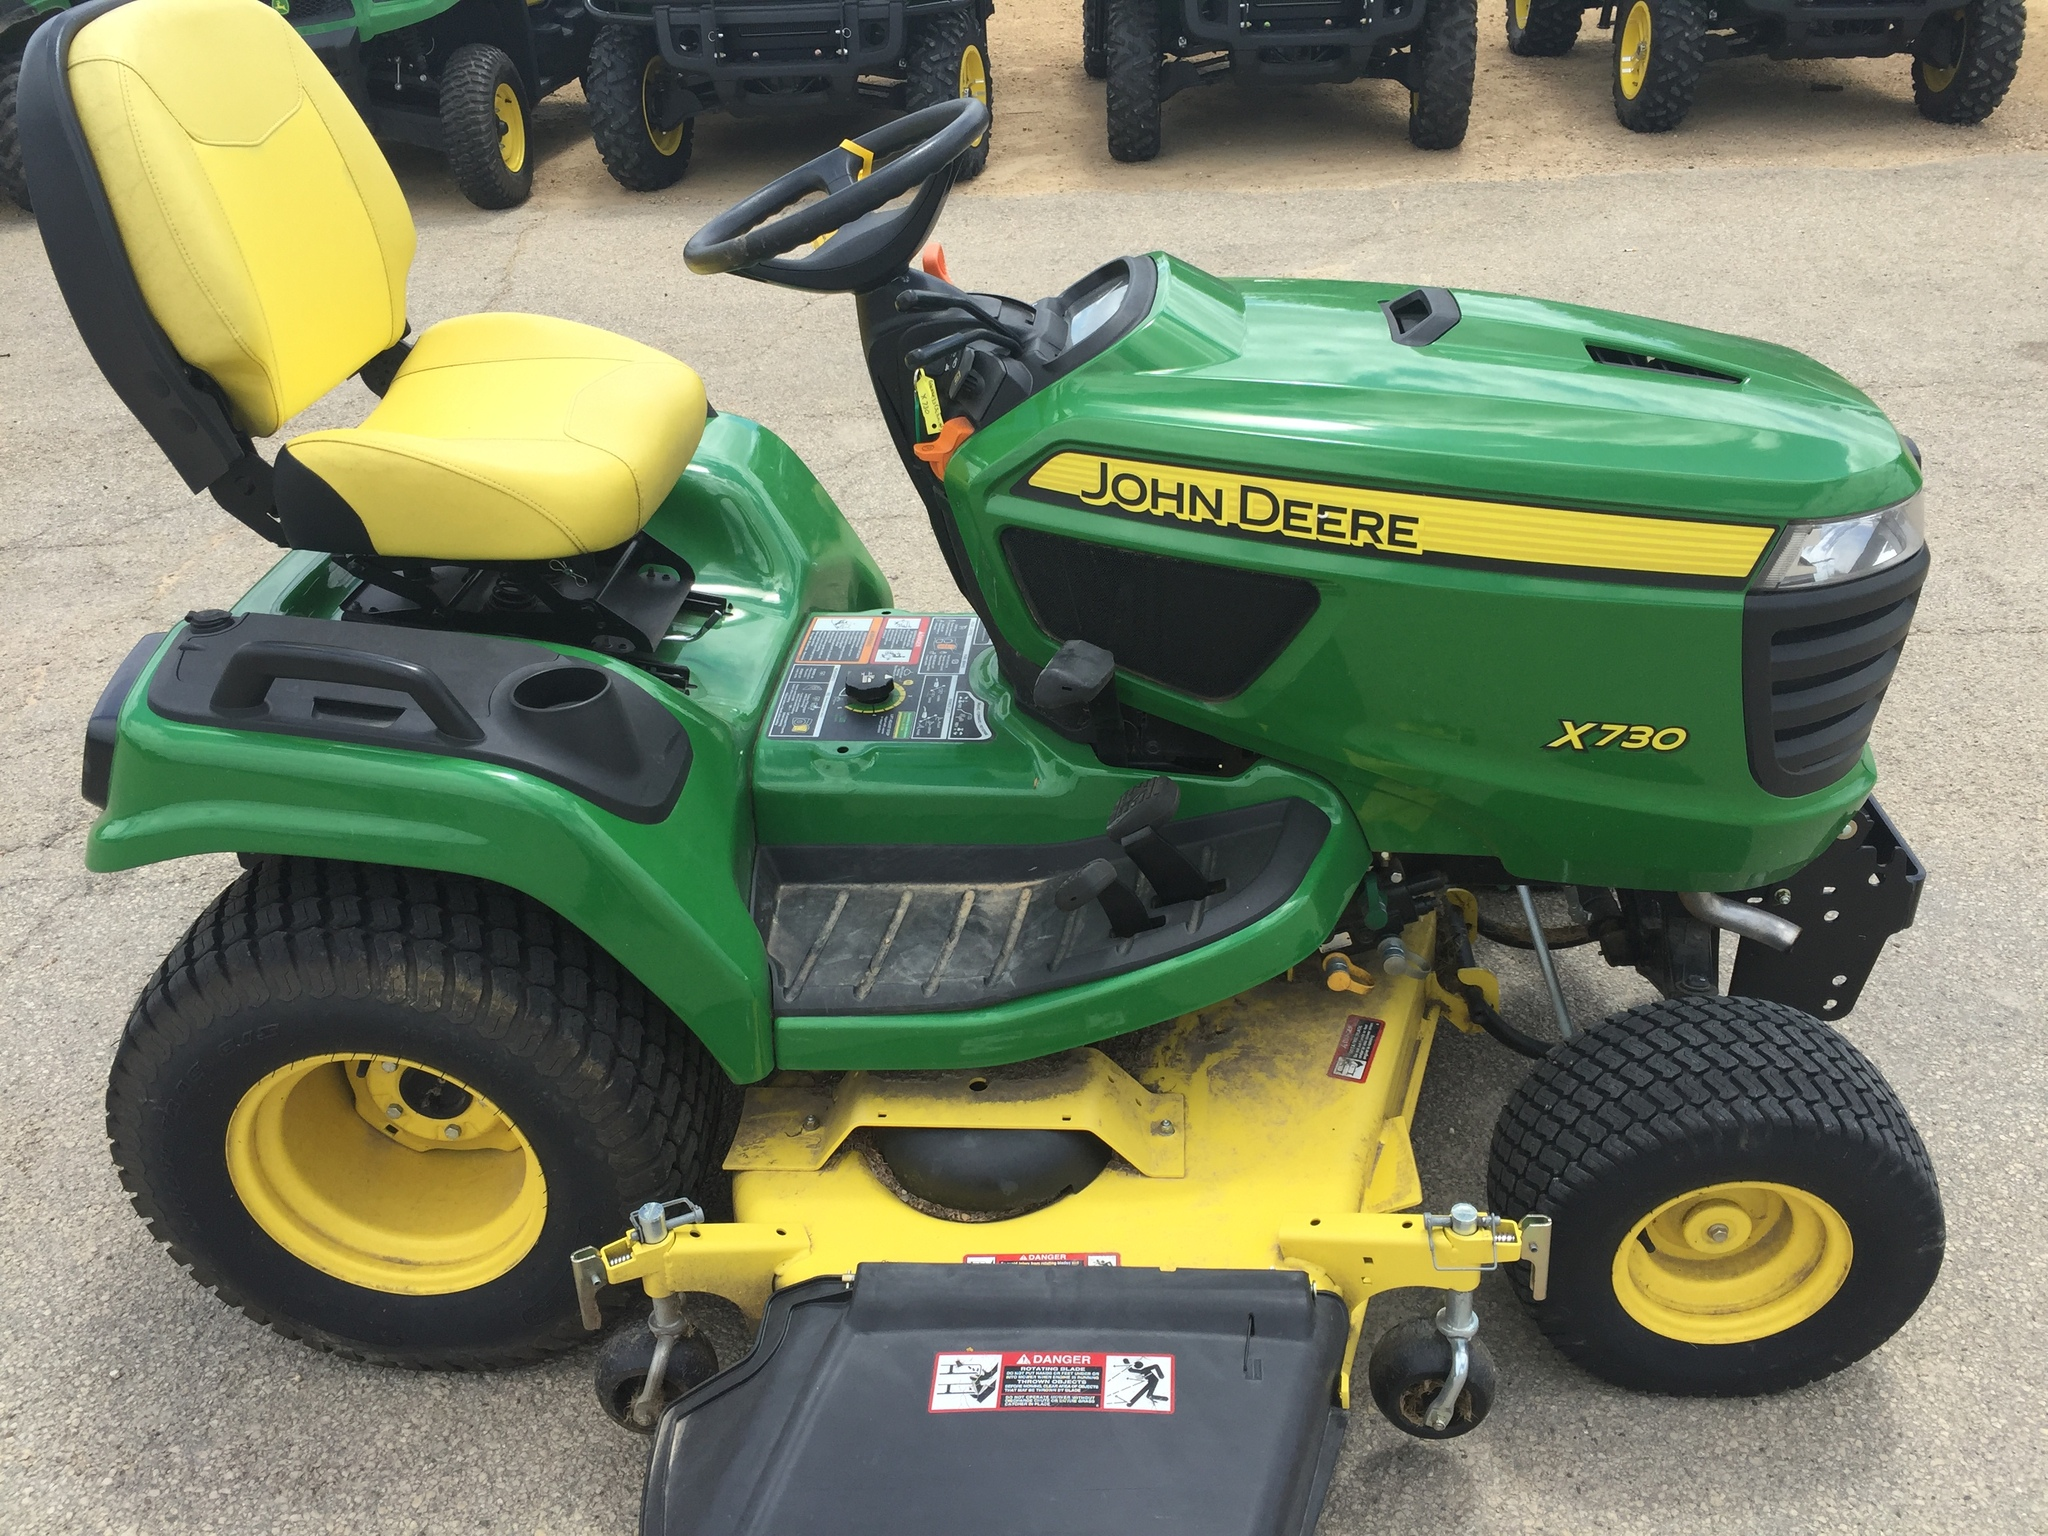 John deere x730 lawn garden tractors for sale 59771 for Garden machinery for sale